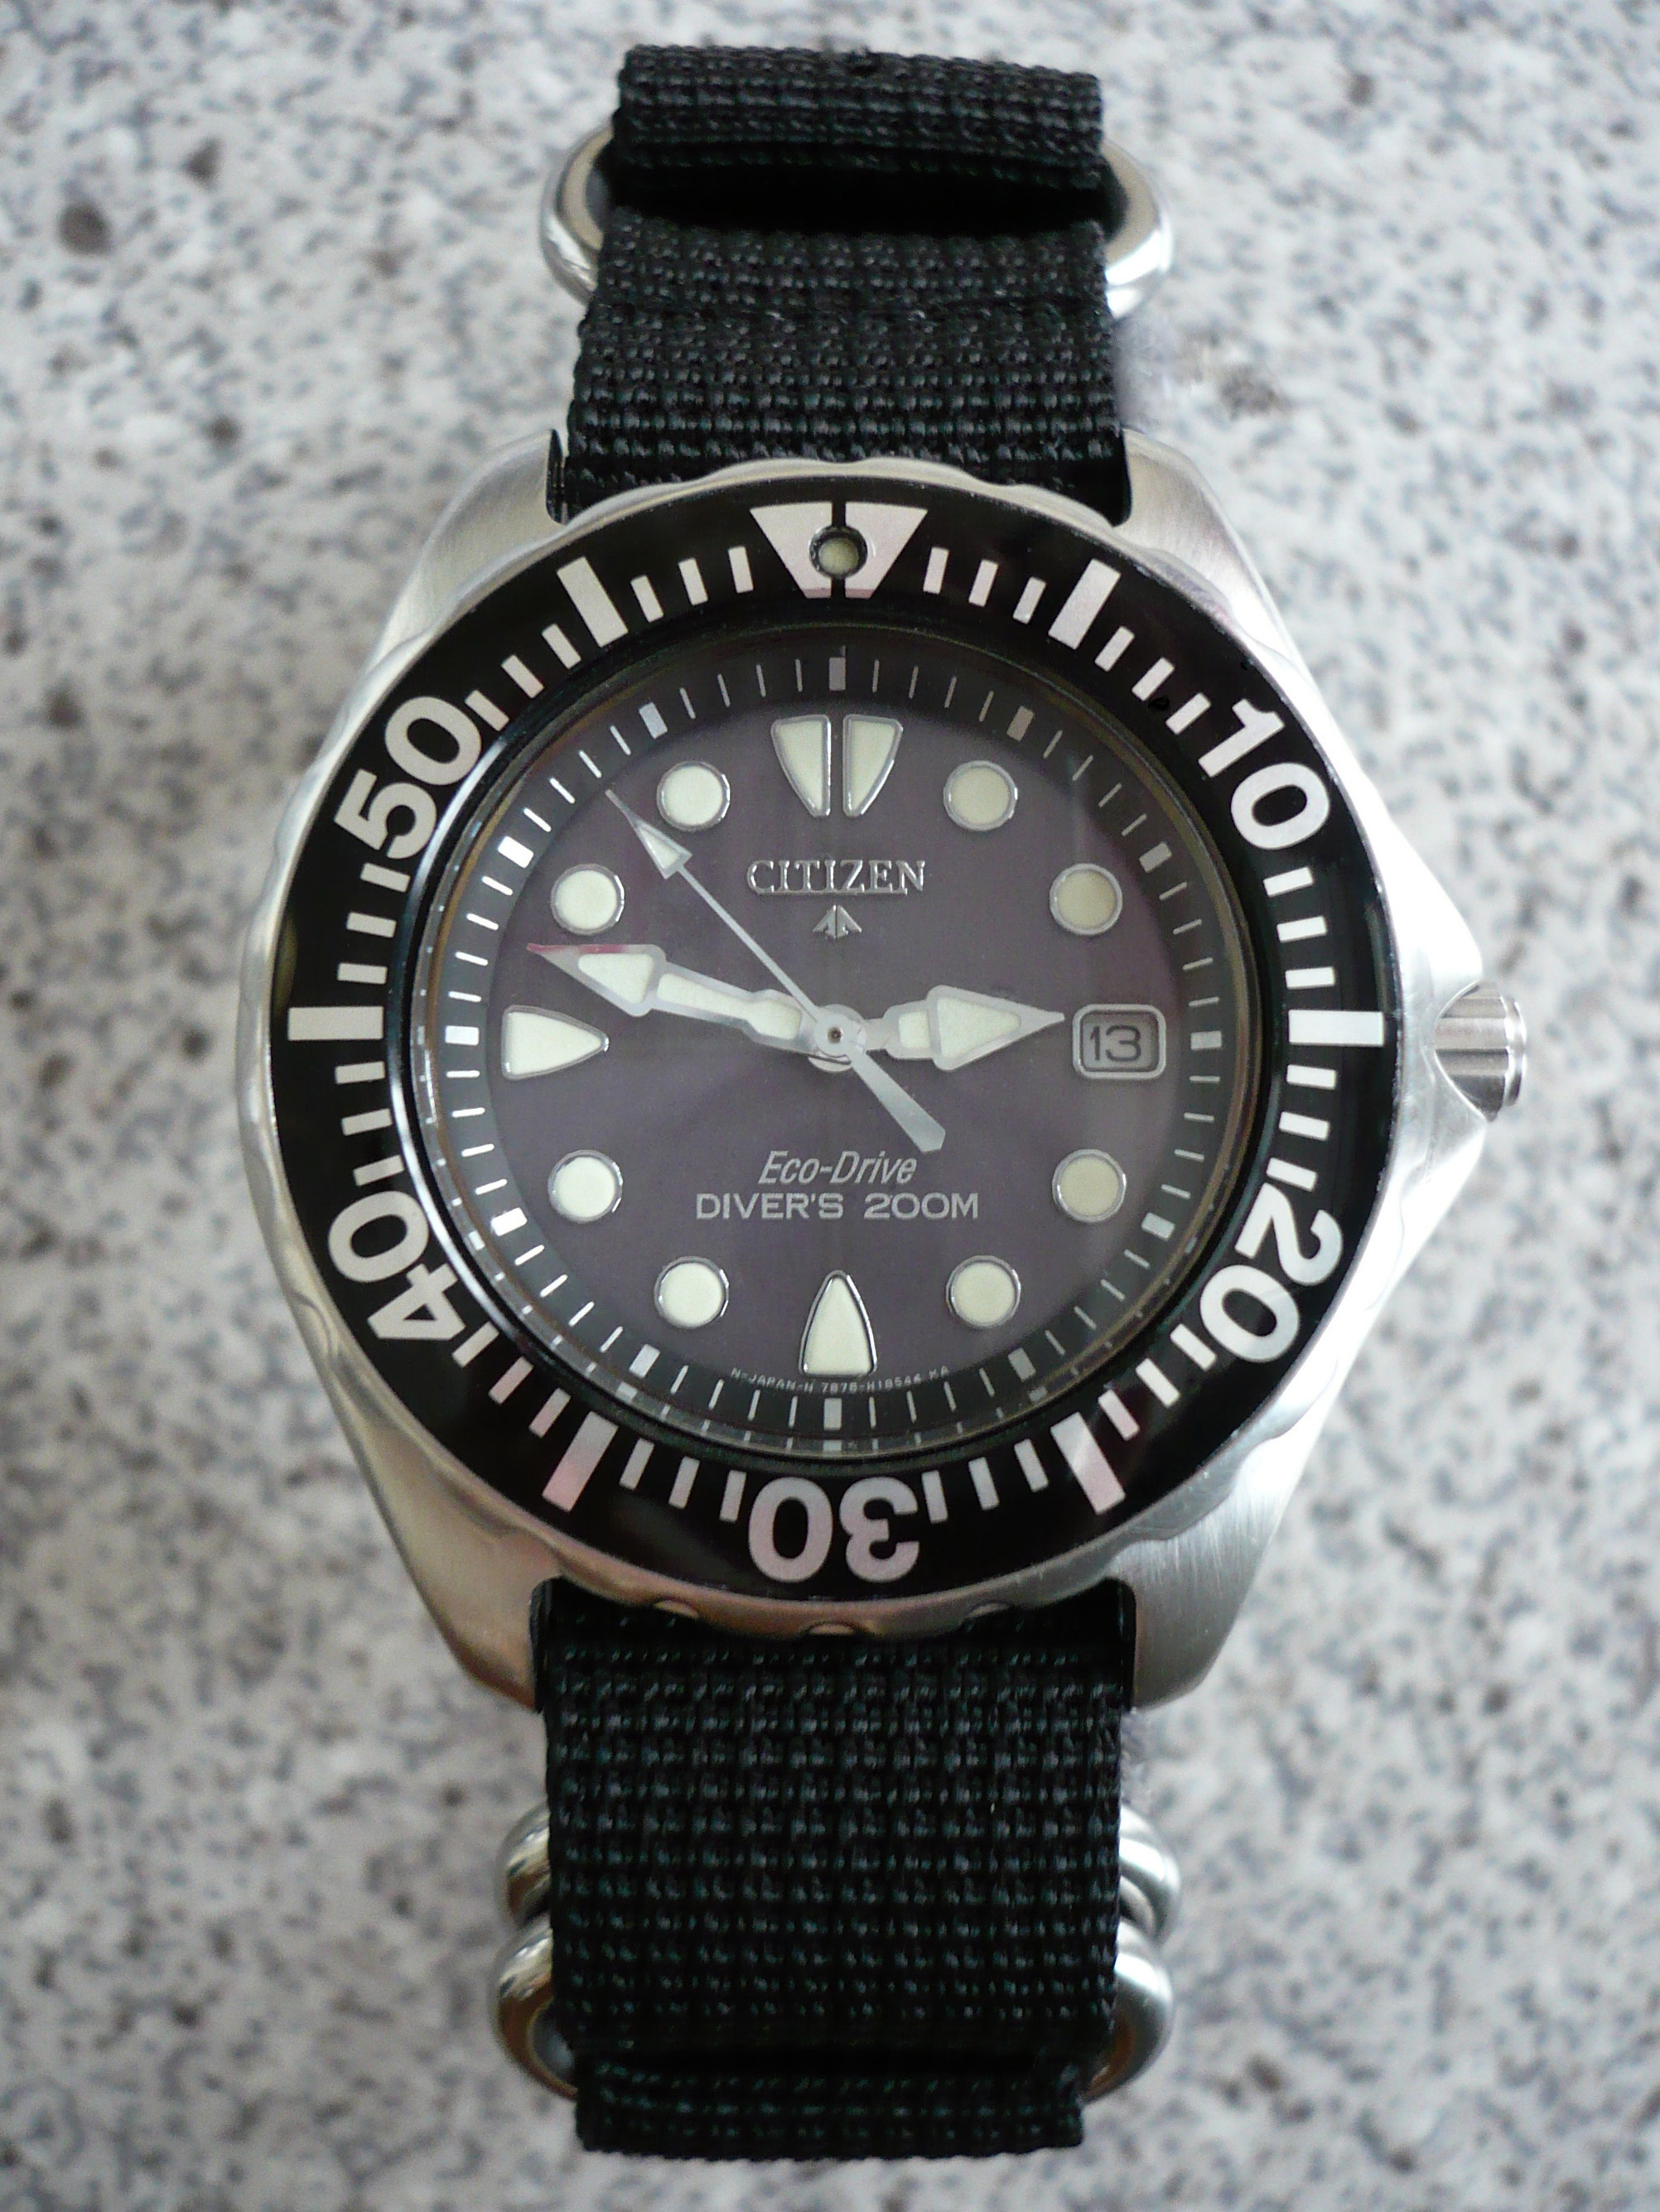 how my img orient the iso required eastern pro goes lume pip on into as manufacturing a inset diver at quality saturation collection diving watch under good watches that is bezel